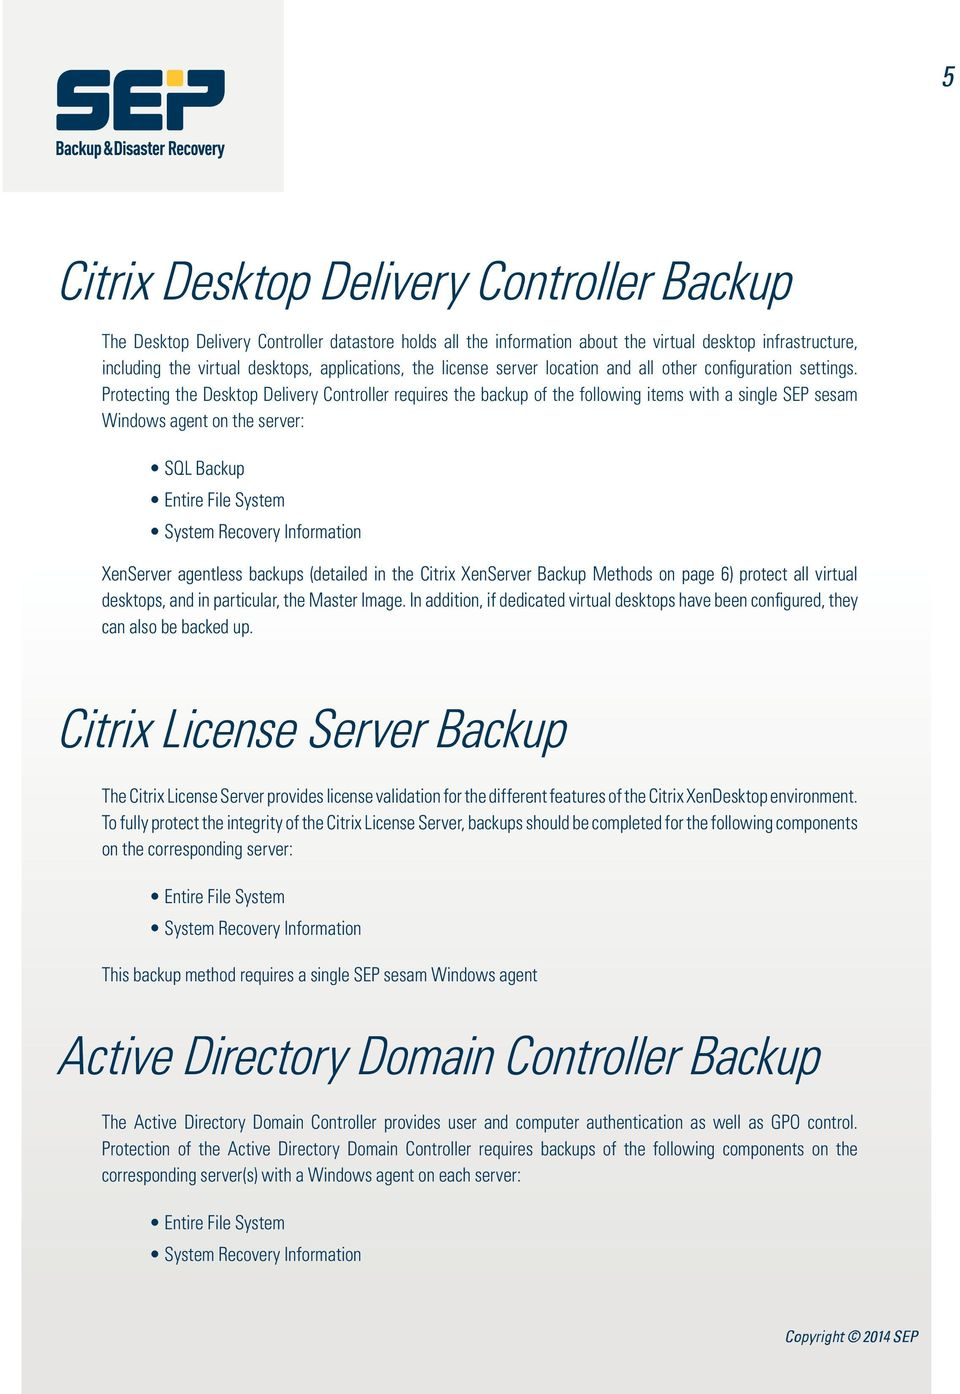 Protecting the Desktop Delivery Controller requires the backup of the following items with a single SEP sesam Windows agent on the server: SQL Backup Entire File System System Recovery Information